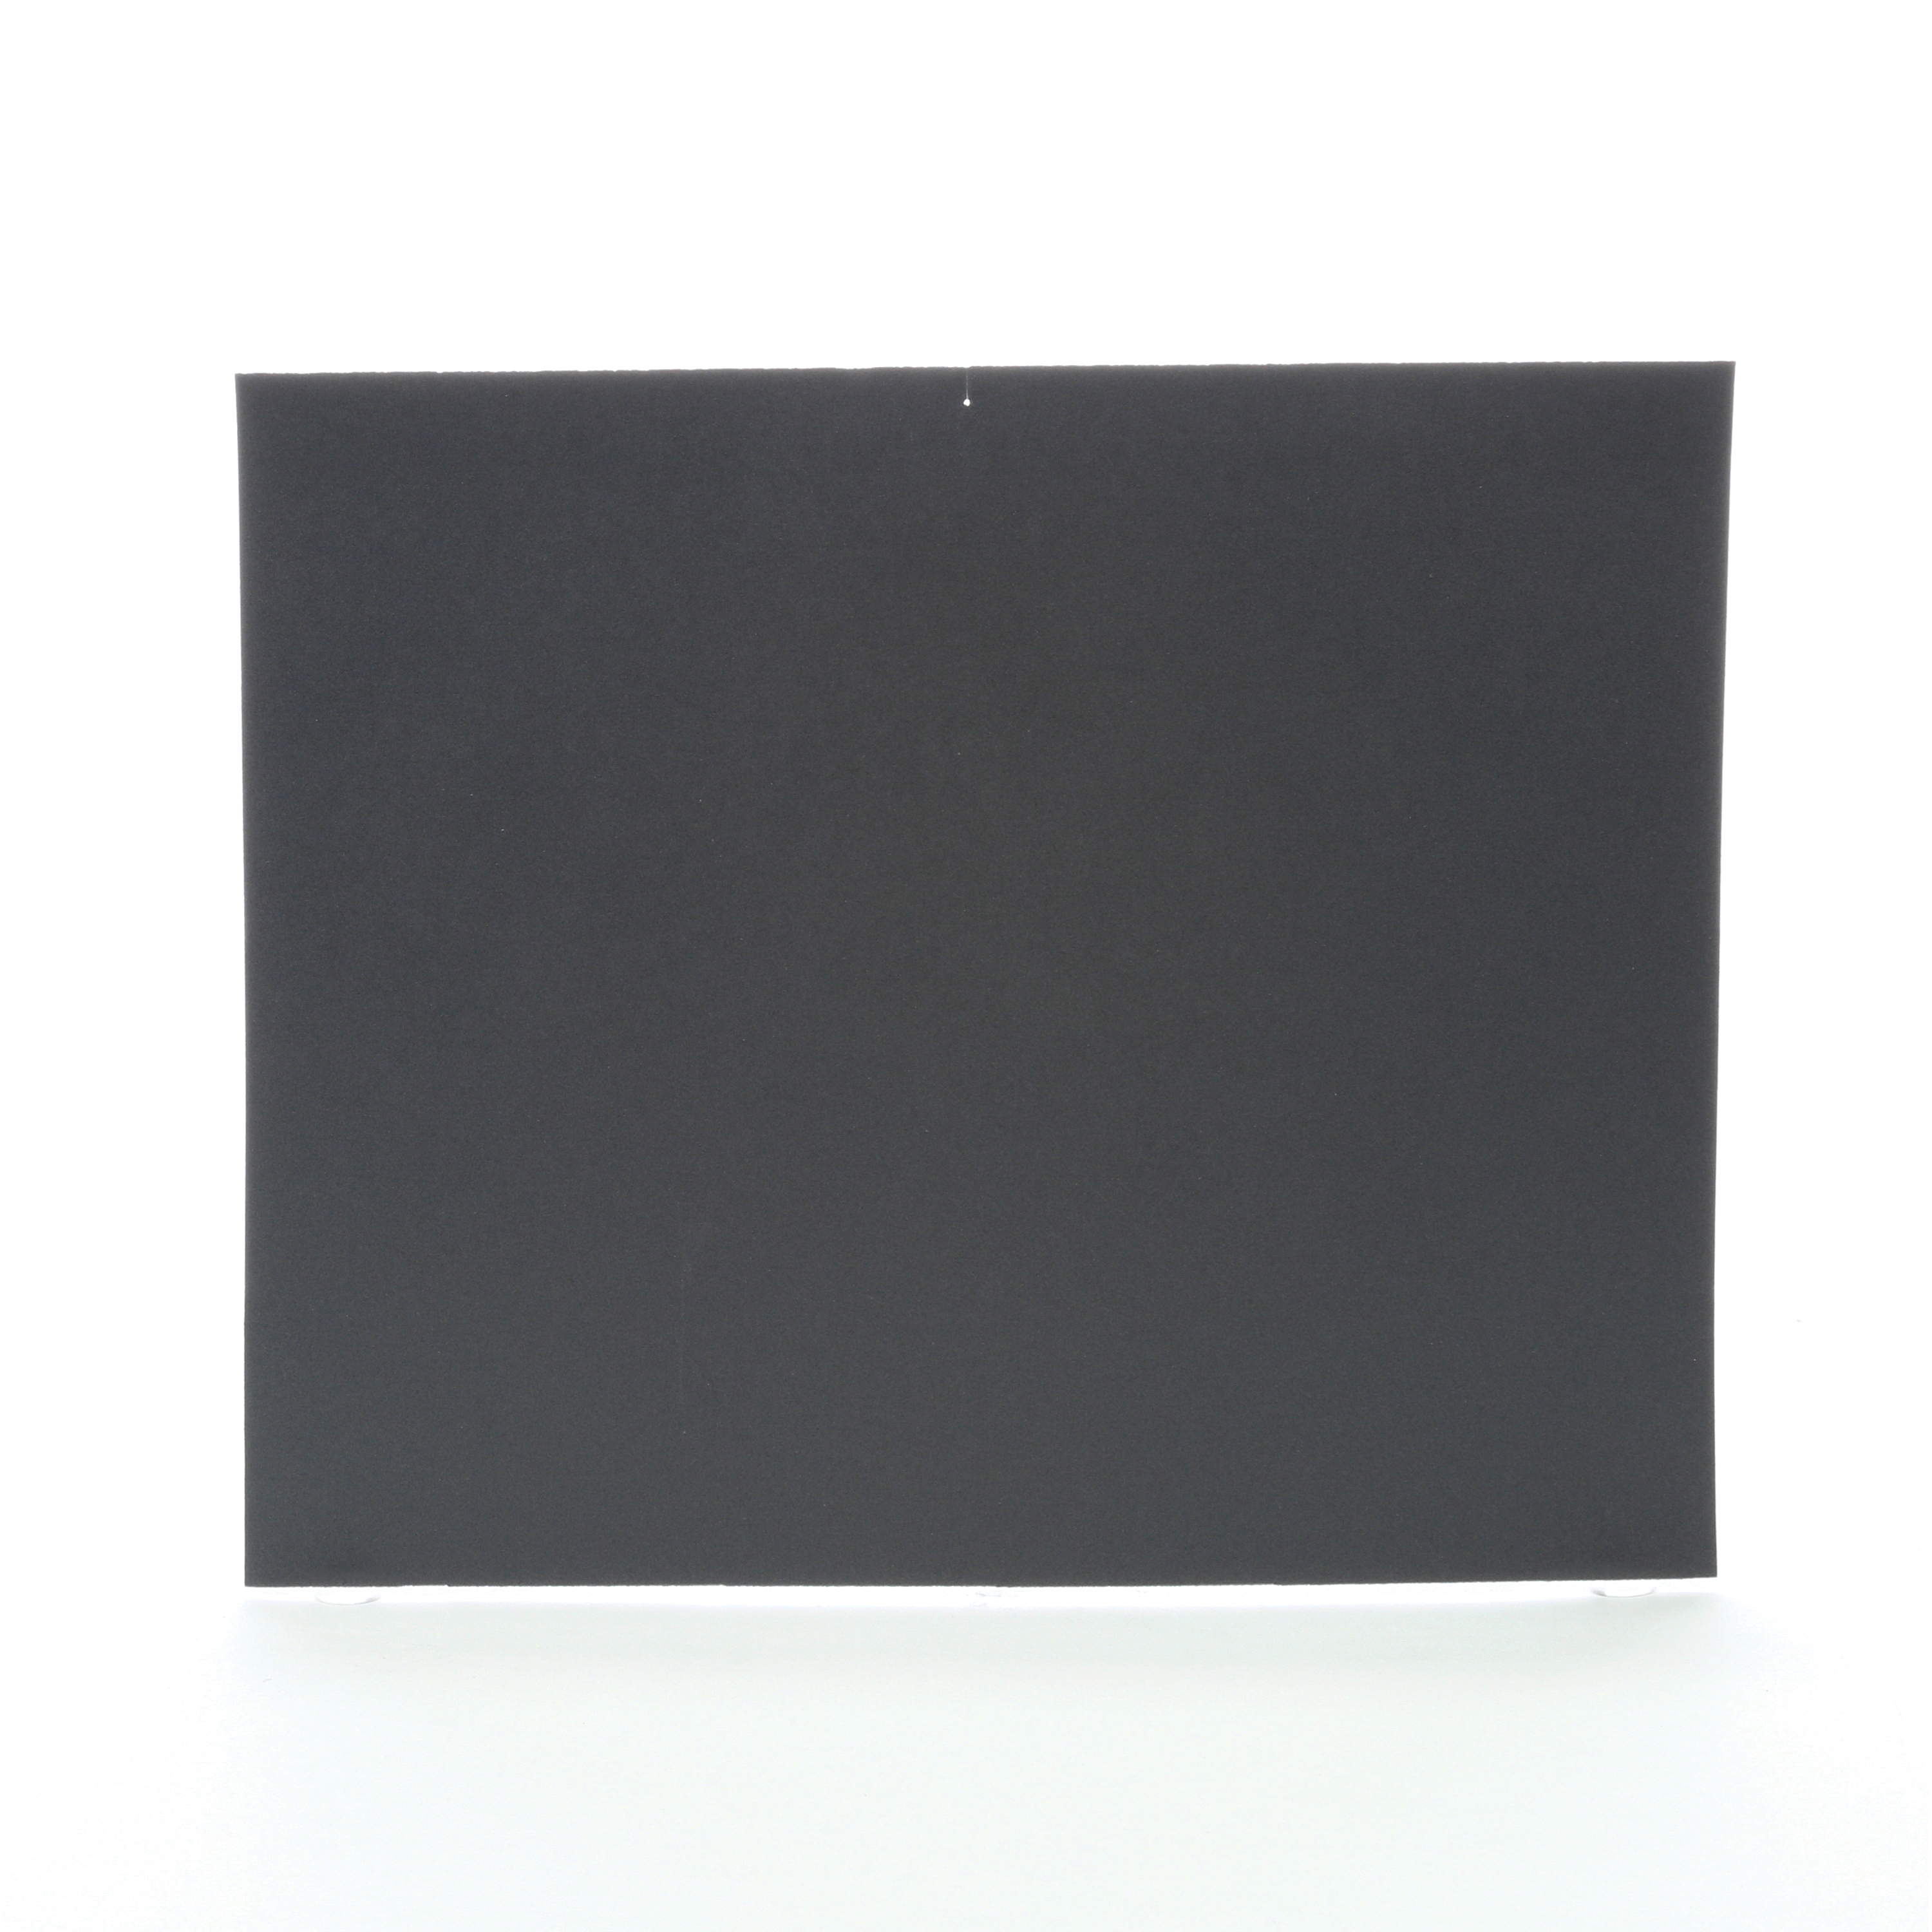 3M™ Wetordry™ 051144-10697 431Q Coated Sanding Sheet, 11 in L x 9 in W, 320 Grit, Extra Fine Grade, Silicon Carbide Abrasive, Paper Backing